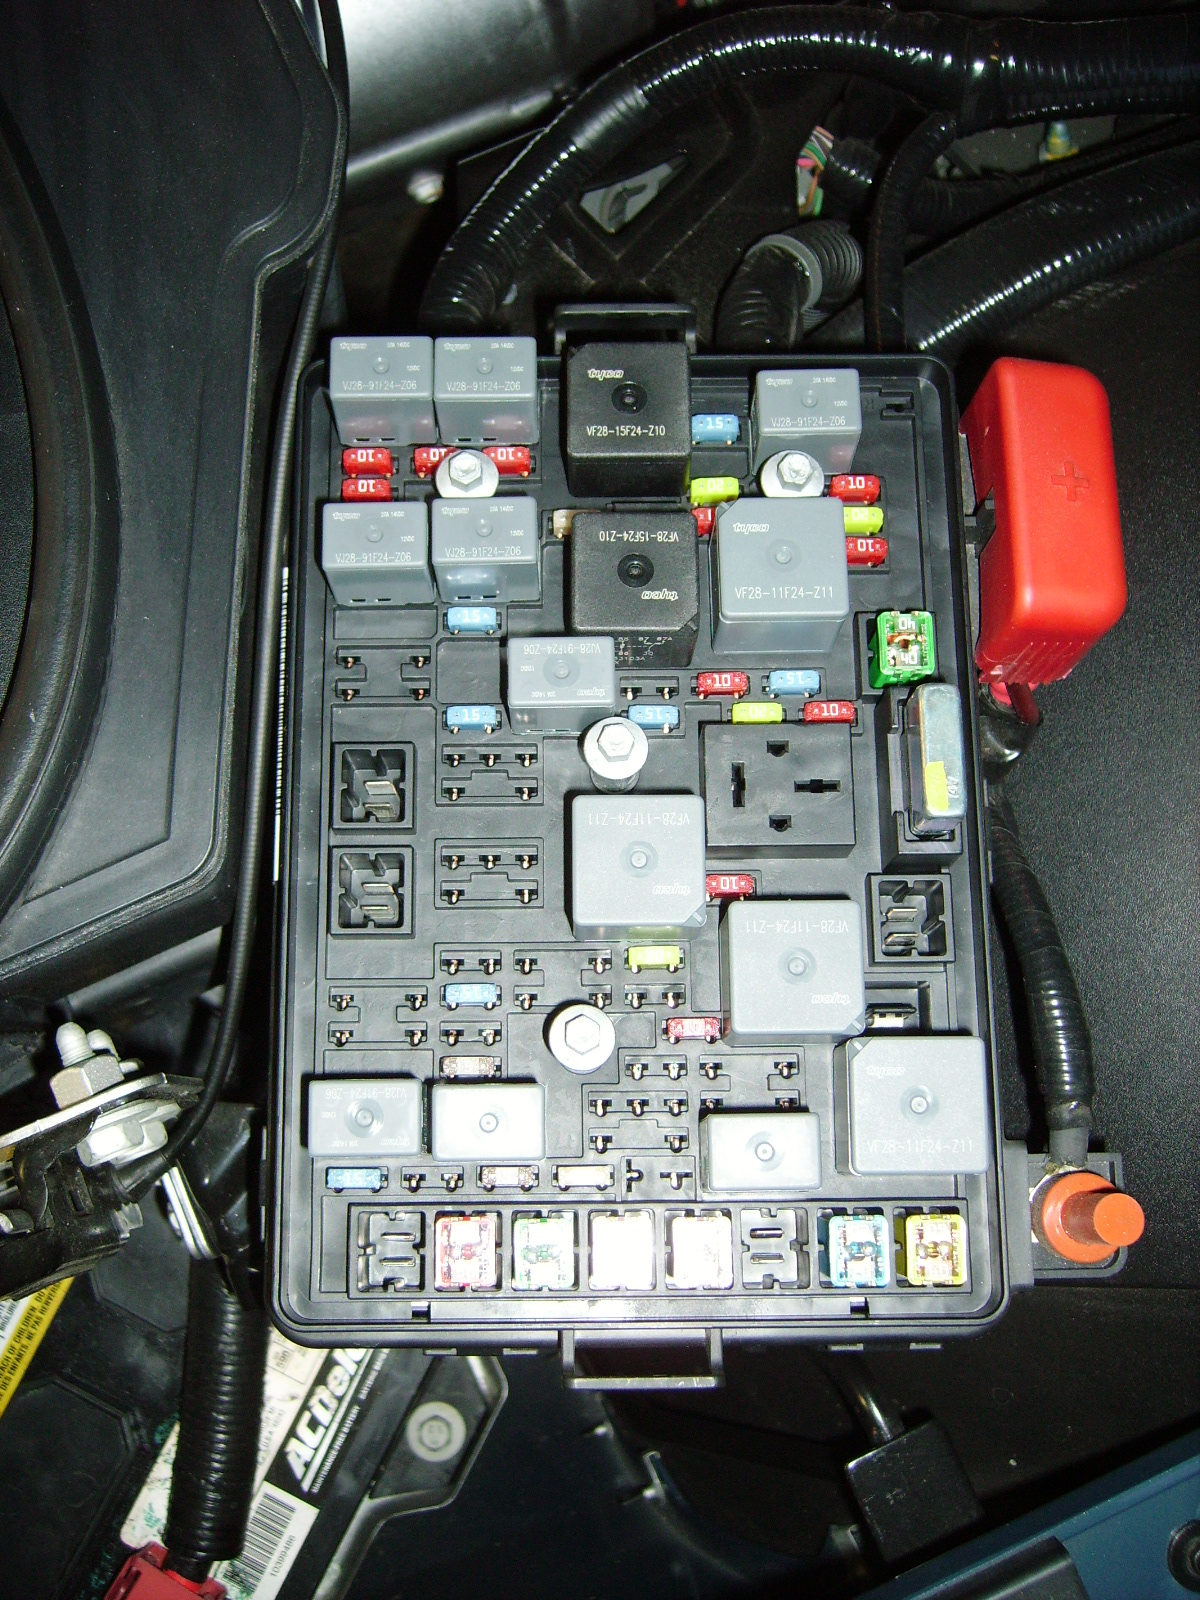 hight resolution of 2001 chevy impala fuse box diagram 2007 hhr fuse box diagram